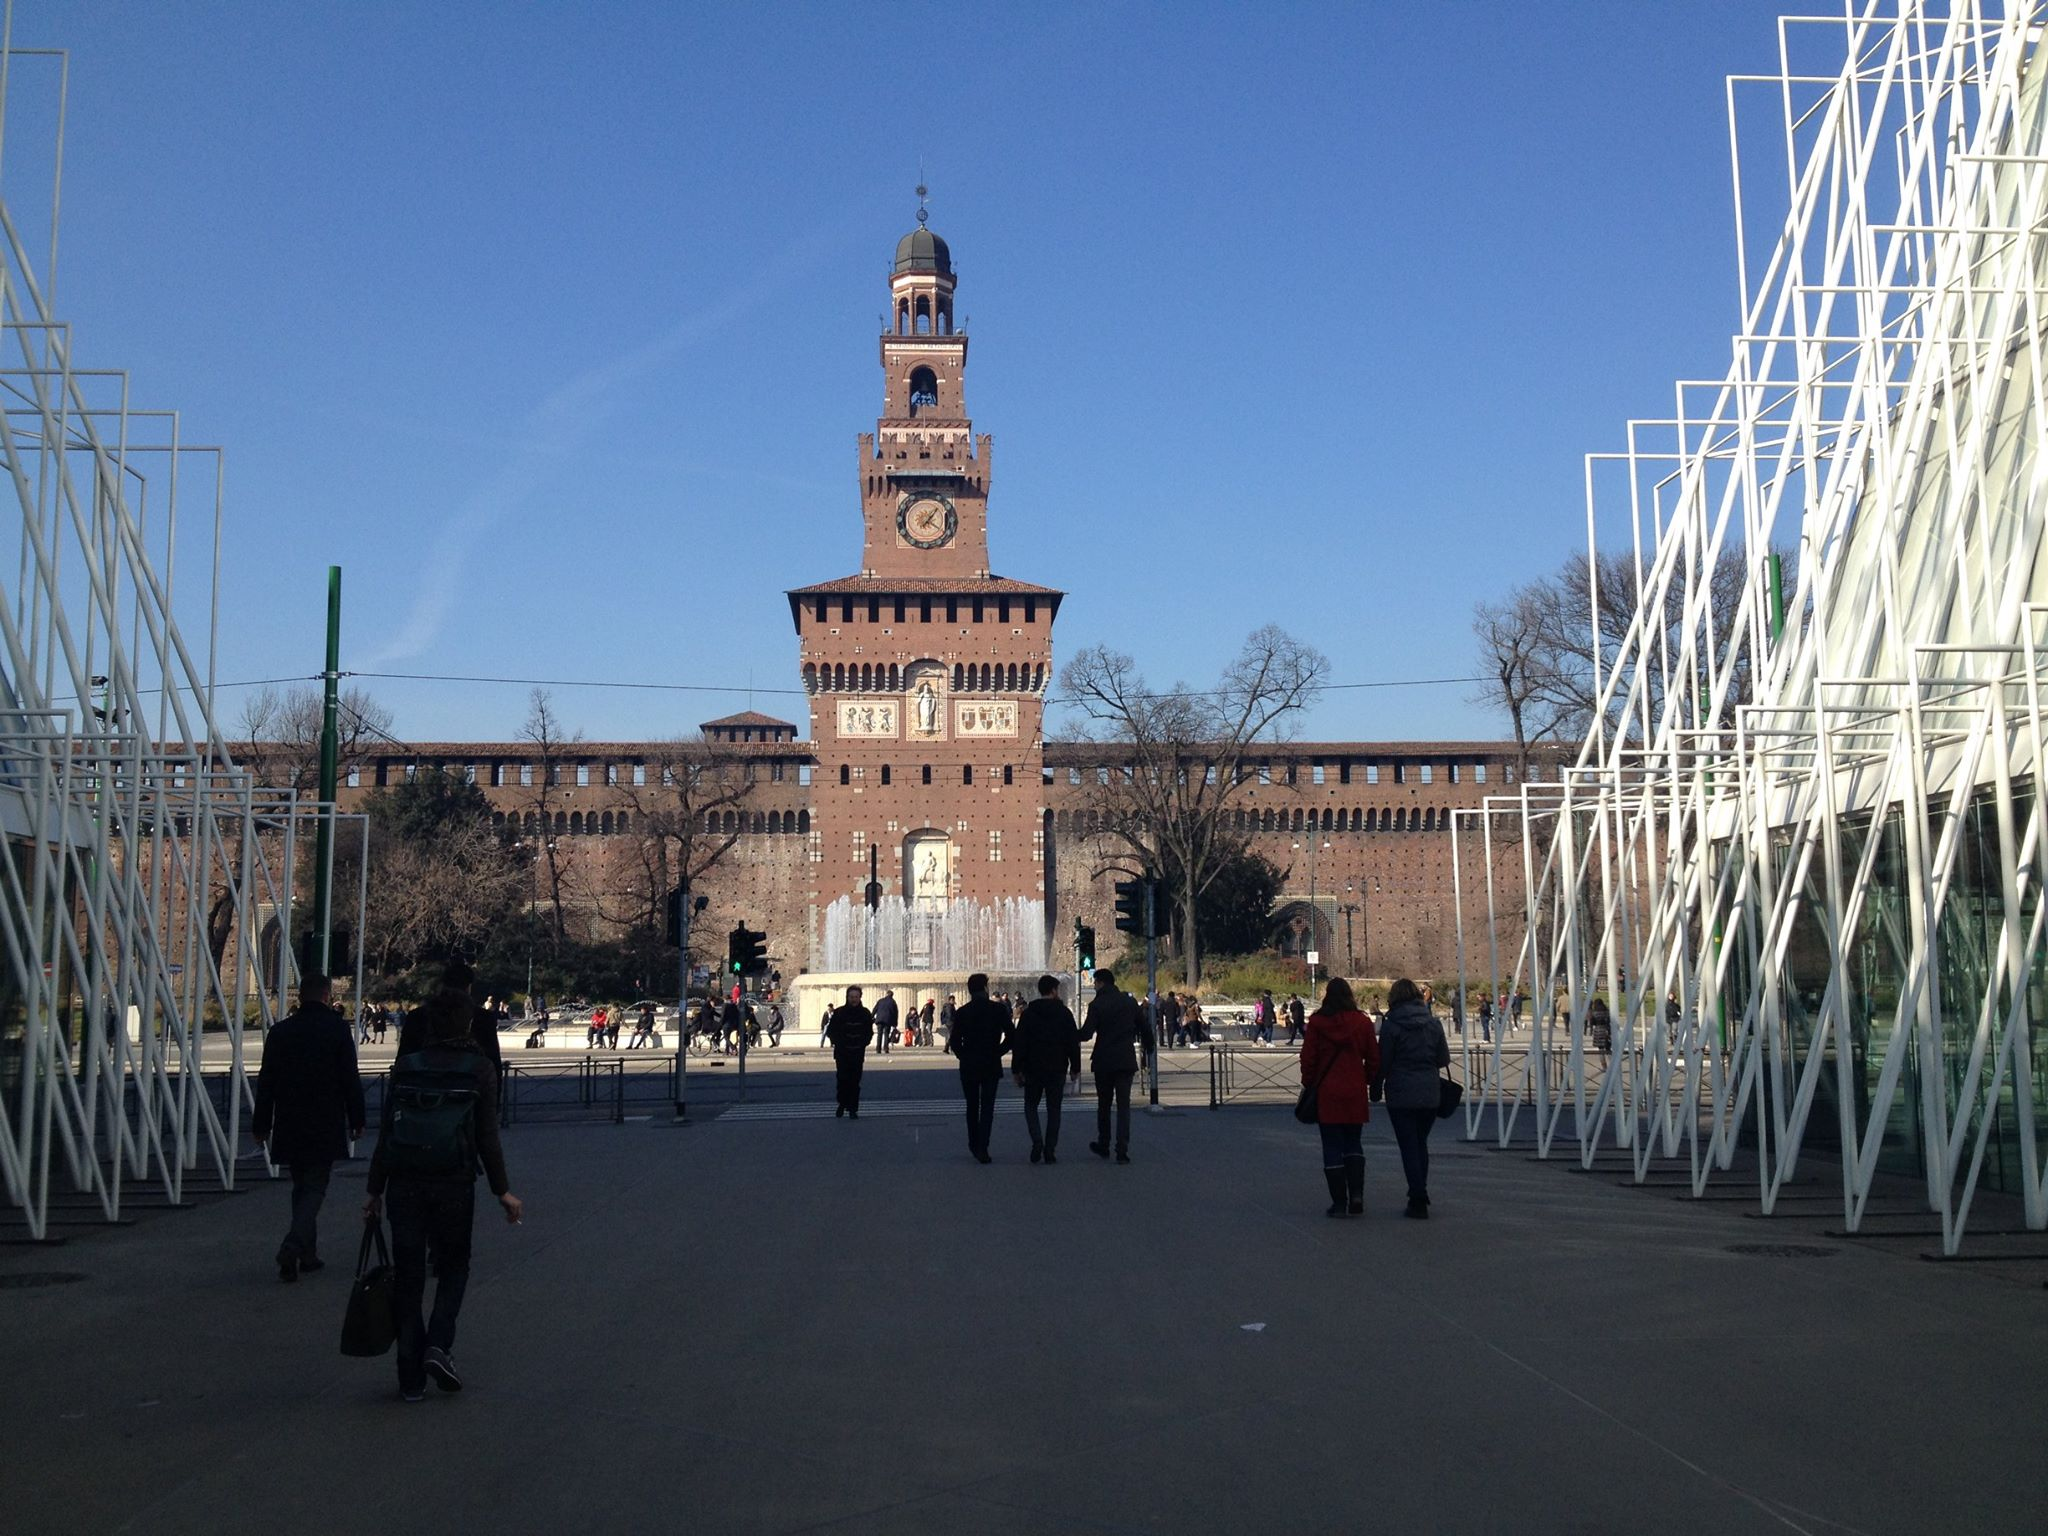 castello sforzesco expo gate